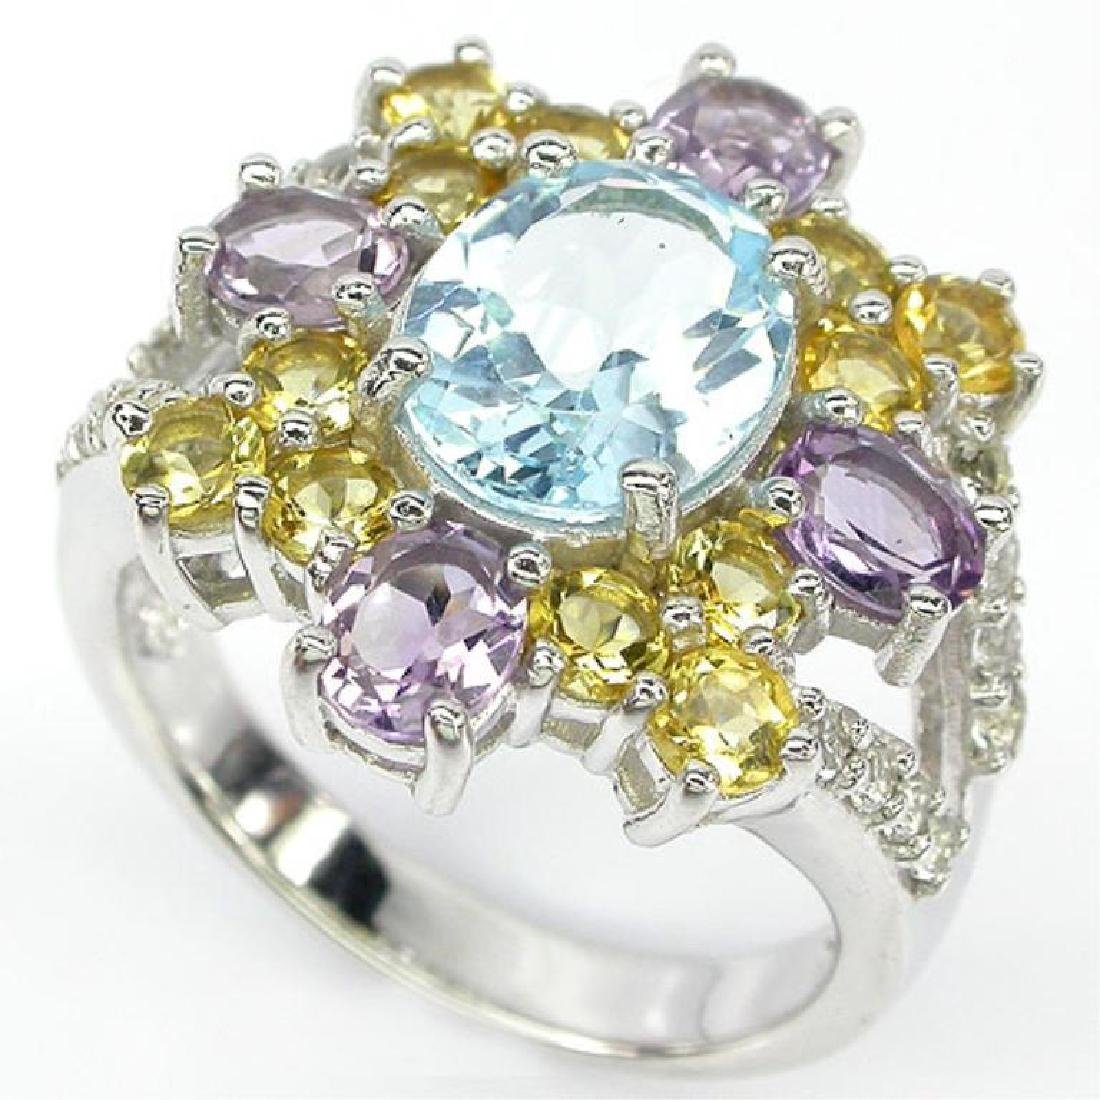 Topaz, Amethyst & Citrine Sterling Cocktail Ring